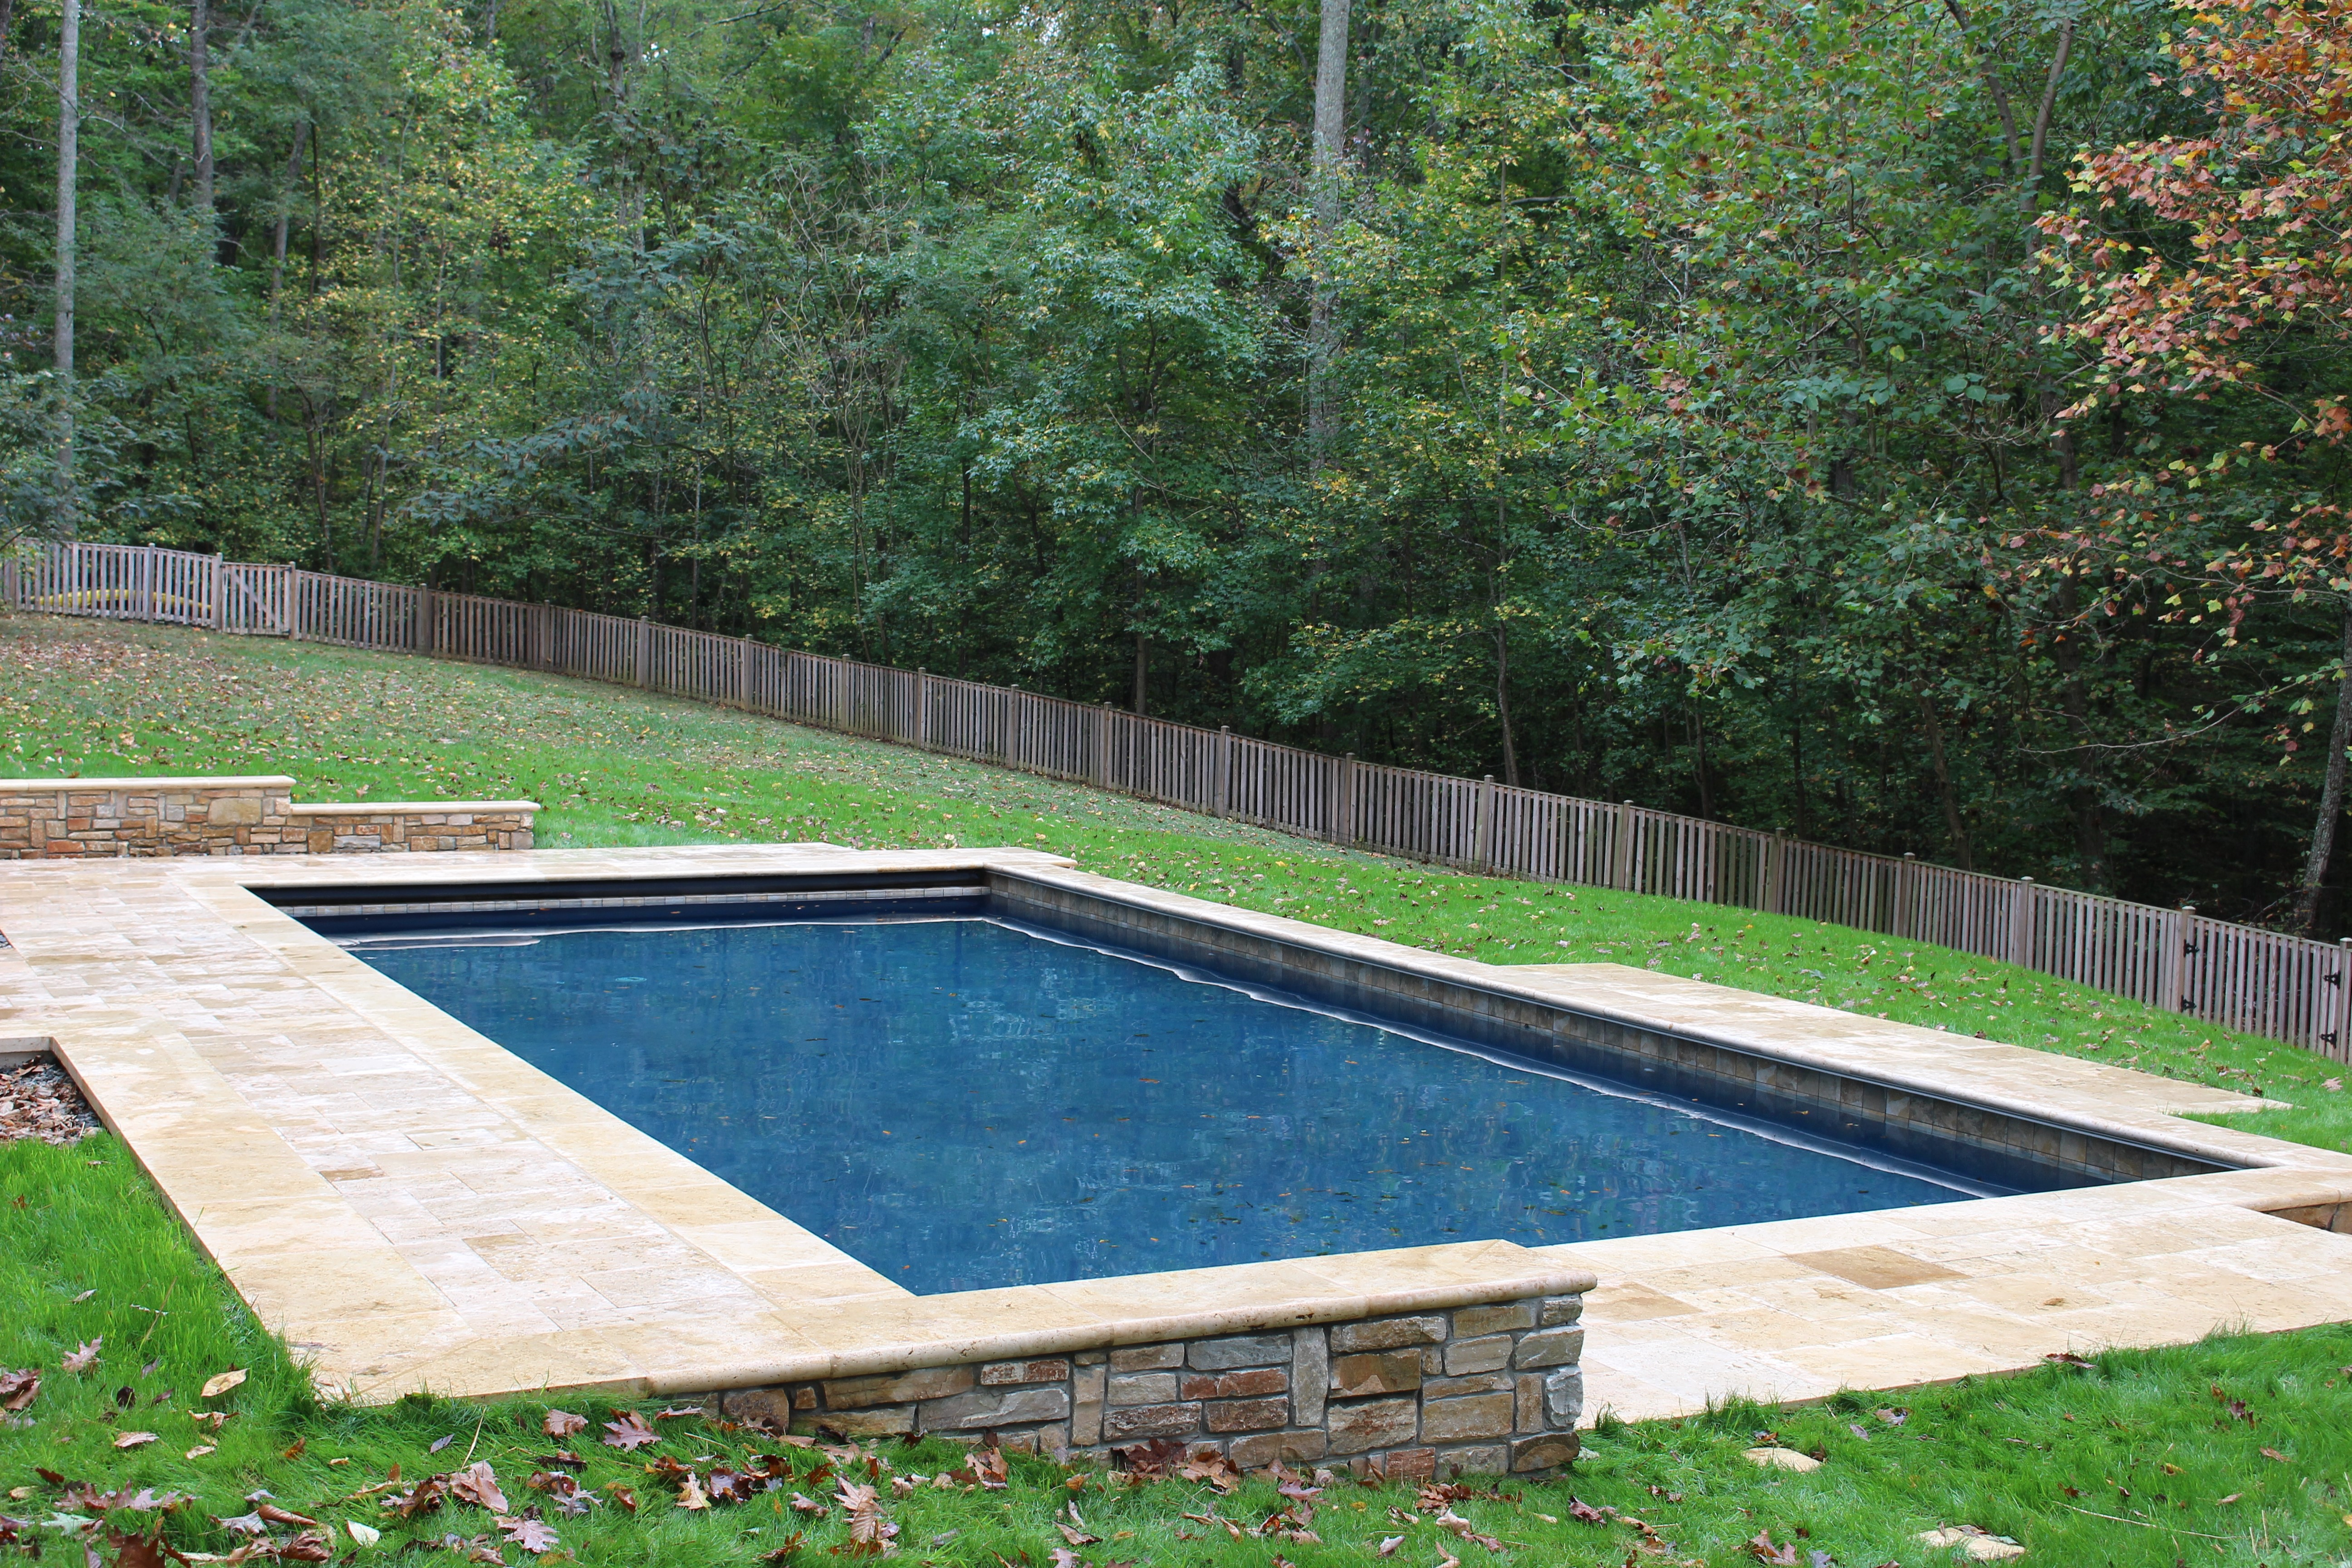 Pool Cover Construction : River bend automatic pool cover project the company